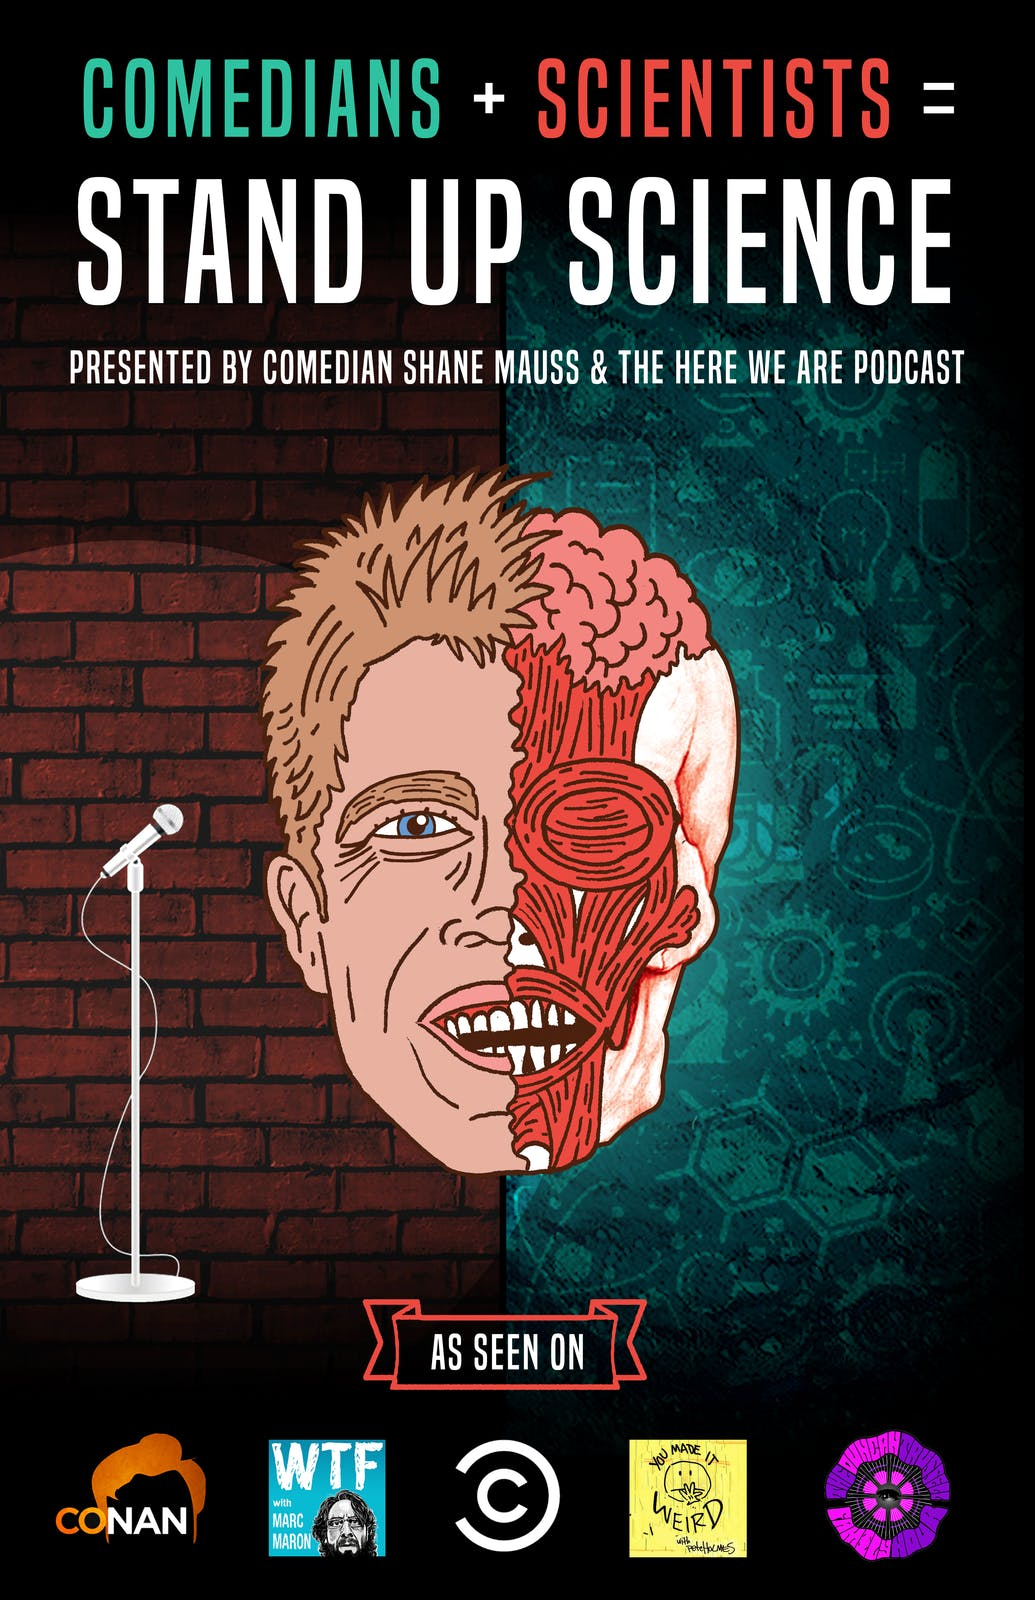 Stand Up Science presented by Shane Mauss and the Here We Are Podcast